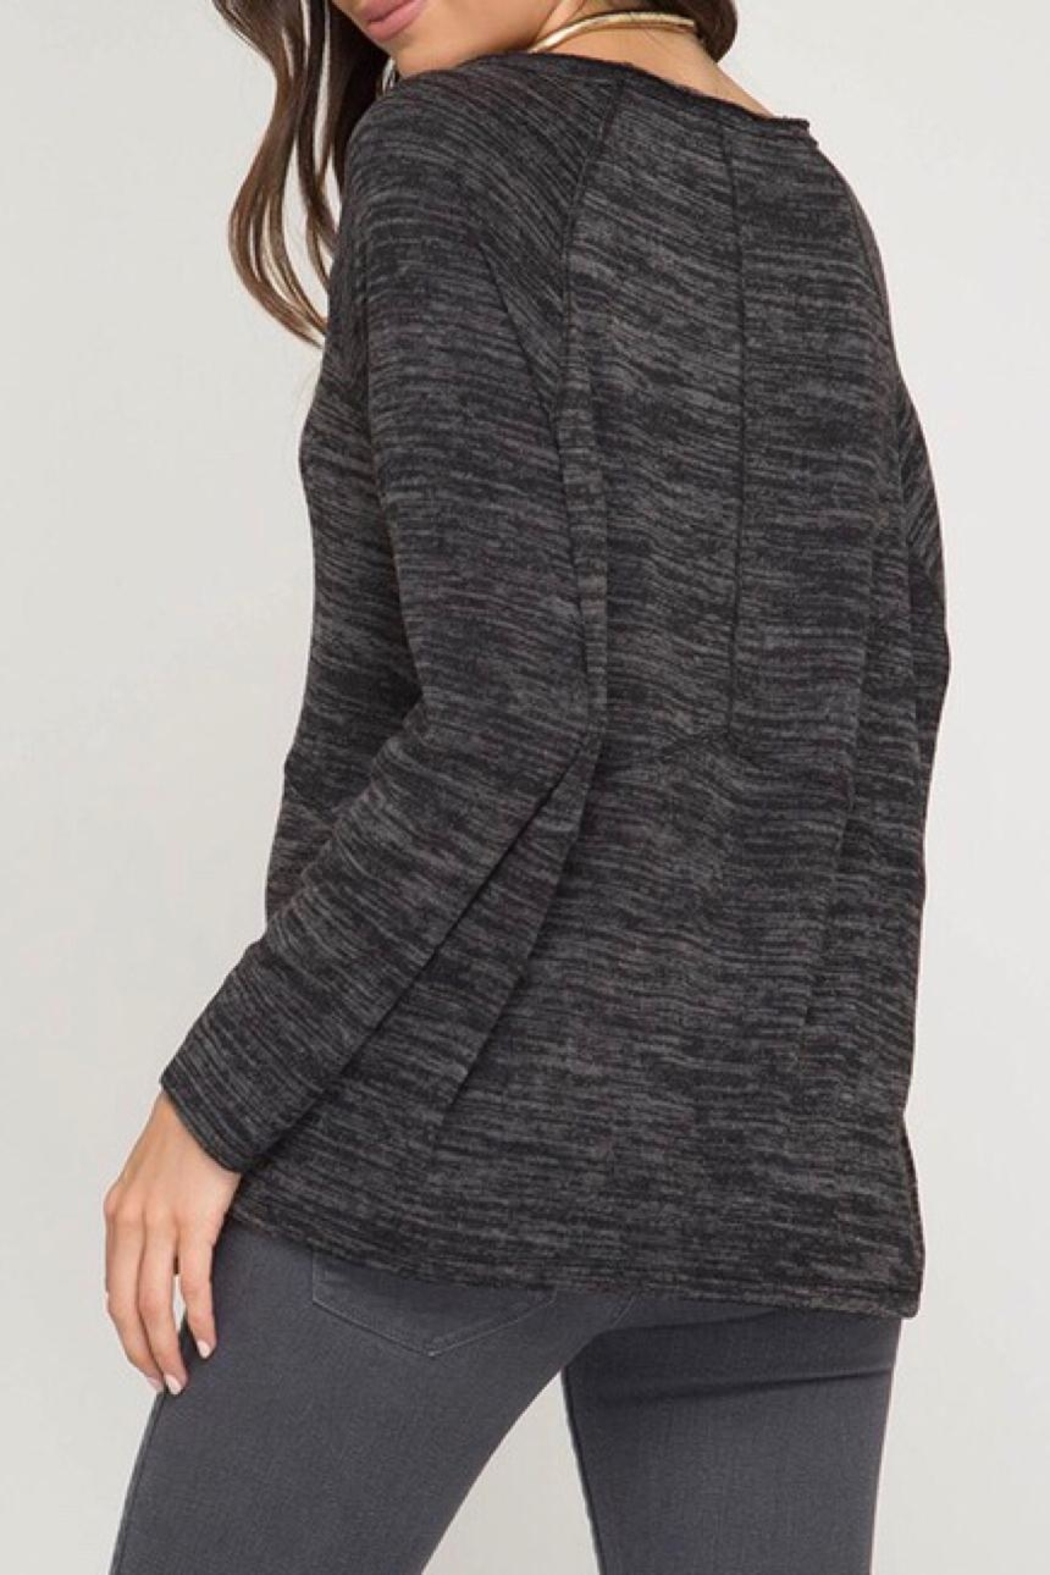 LuLu's Boutique Brushed Knit Top - Front Full Image